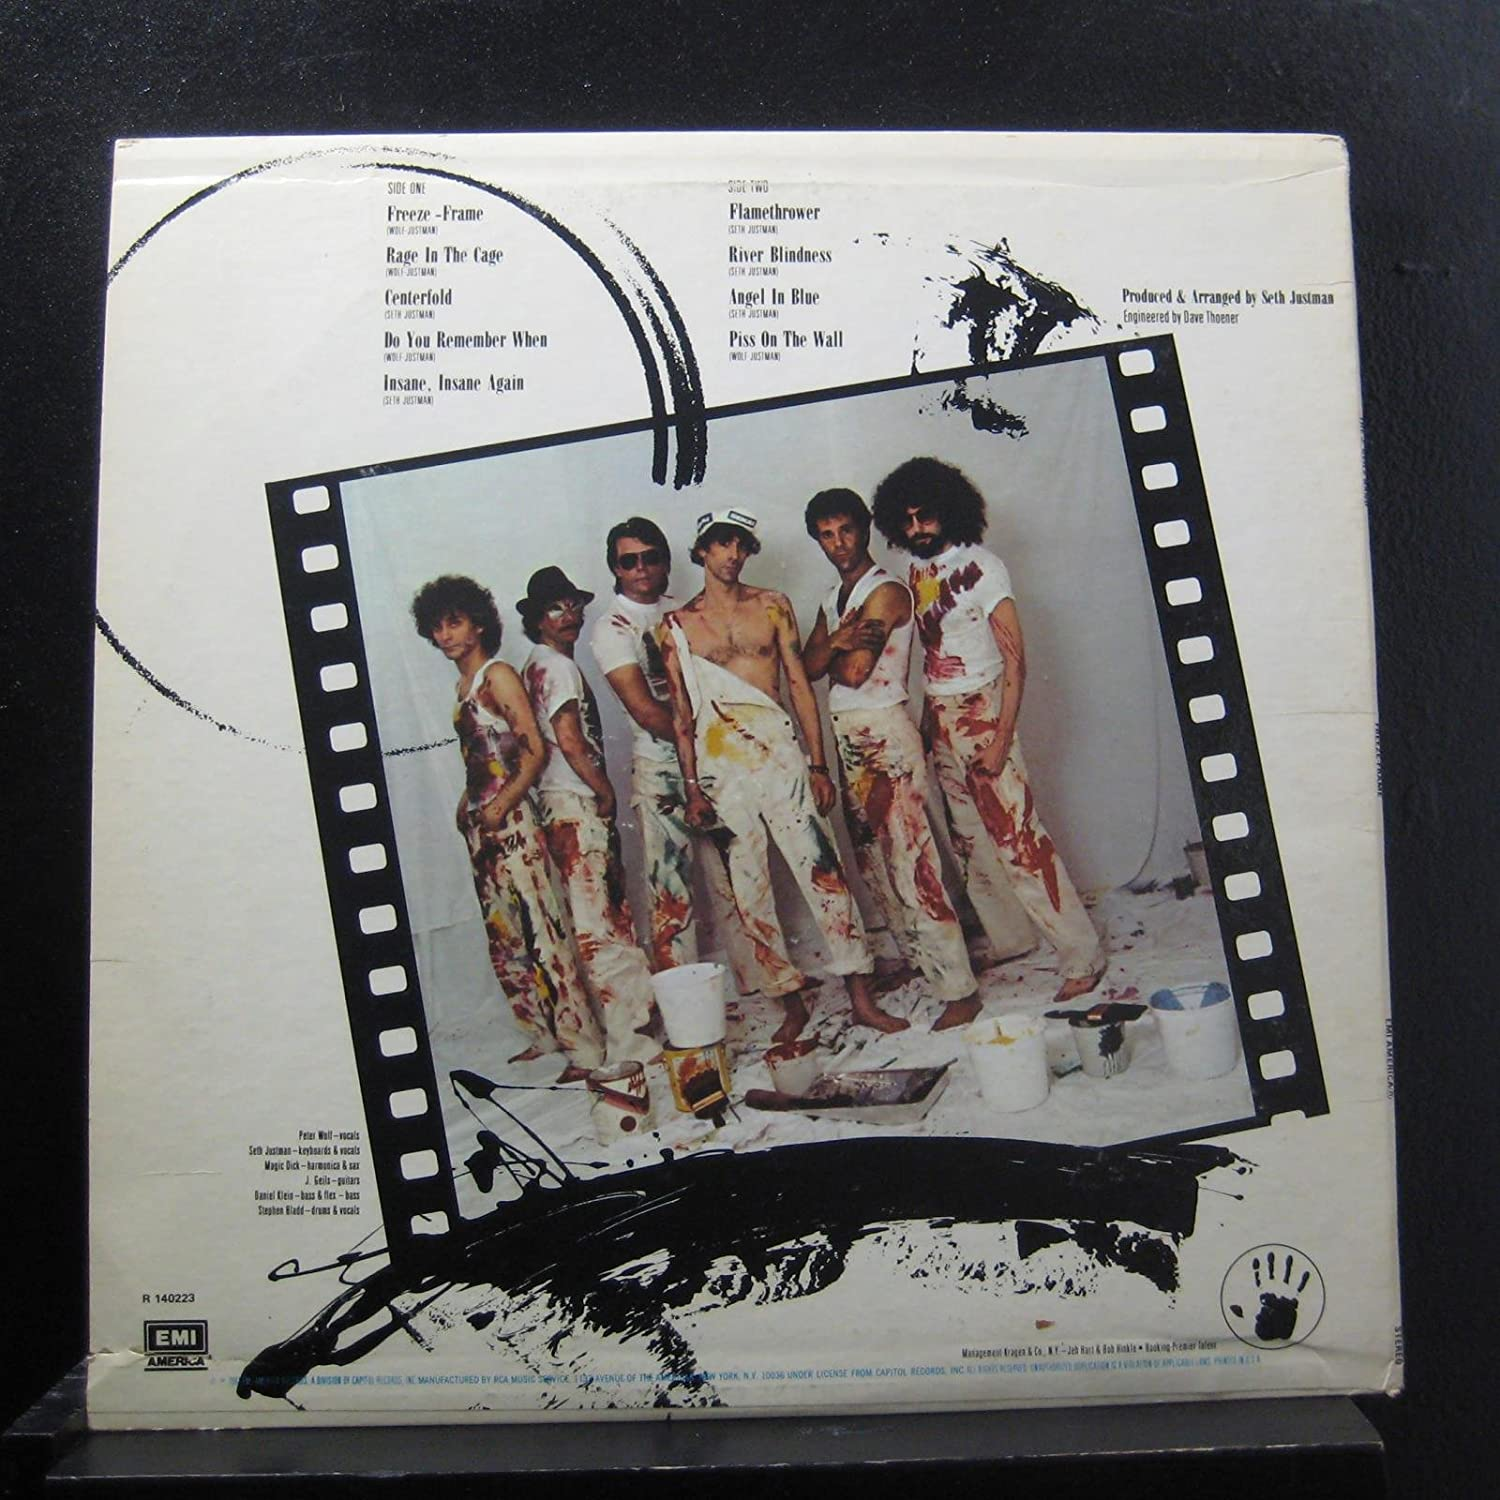 The J. Geils Band - The J. Geils Band - Freeze-Frame - Lp Vinyl ...